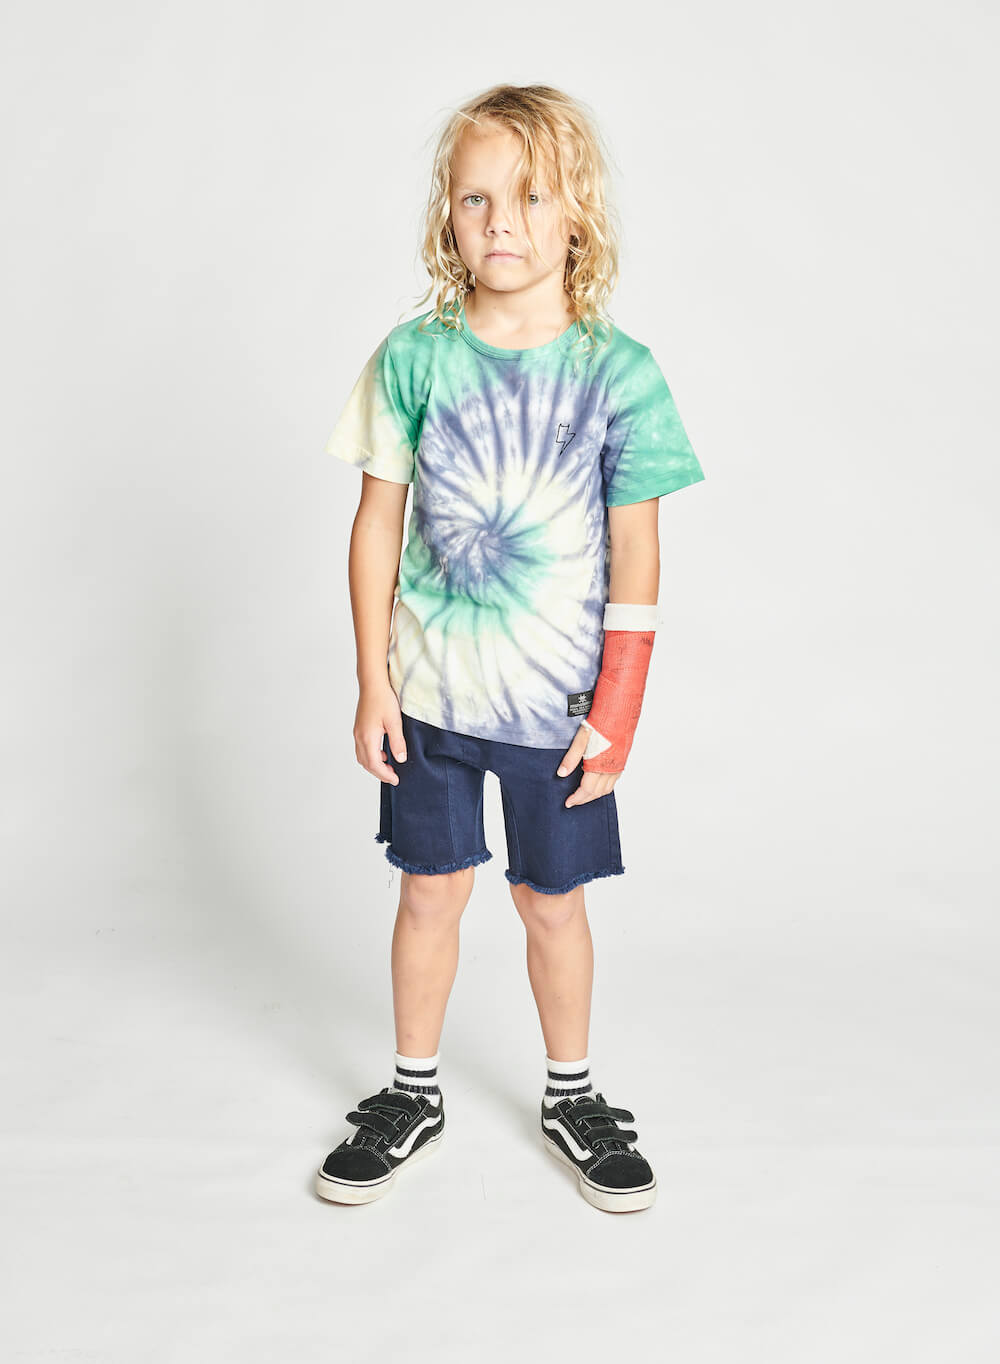 Munster Alley Tee Green Dye | Tiny People